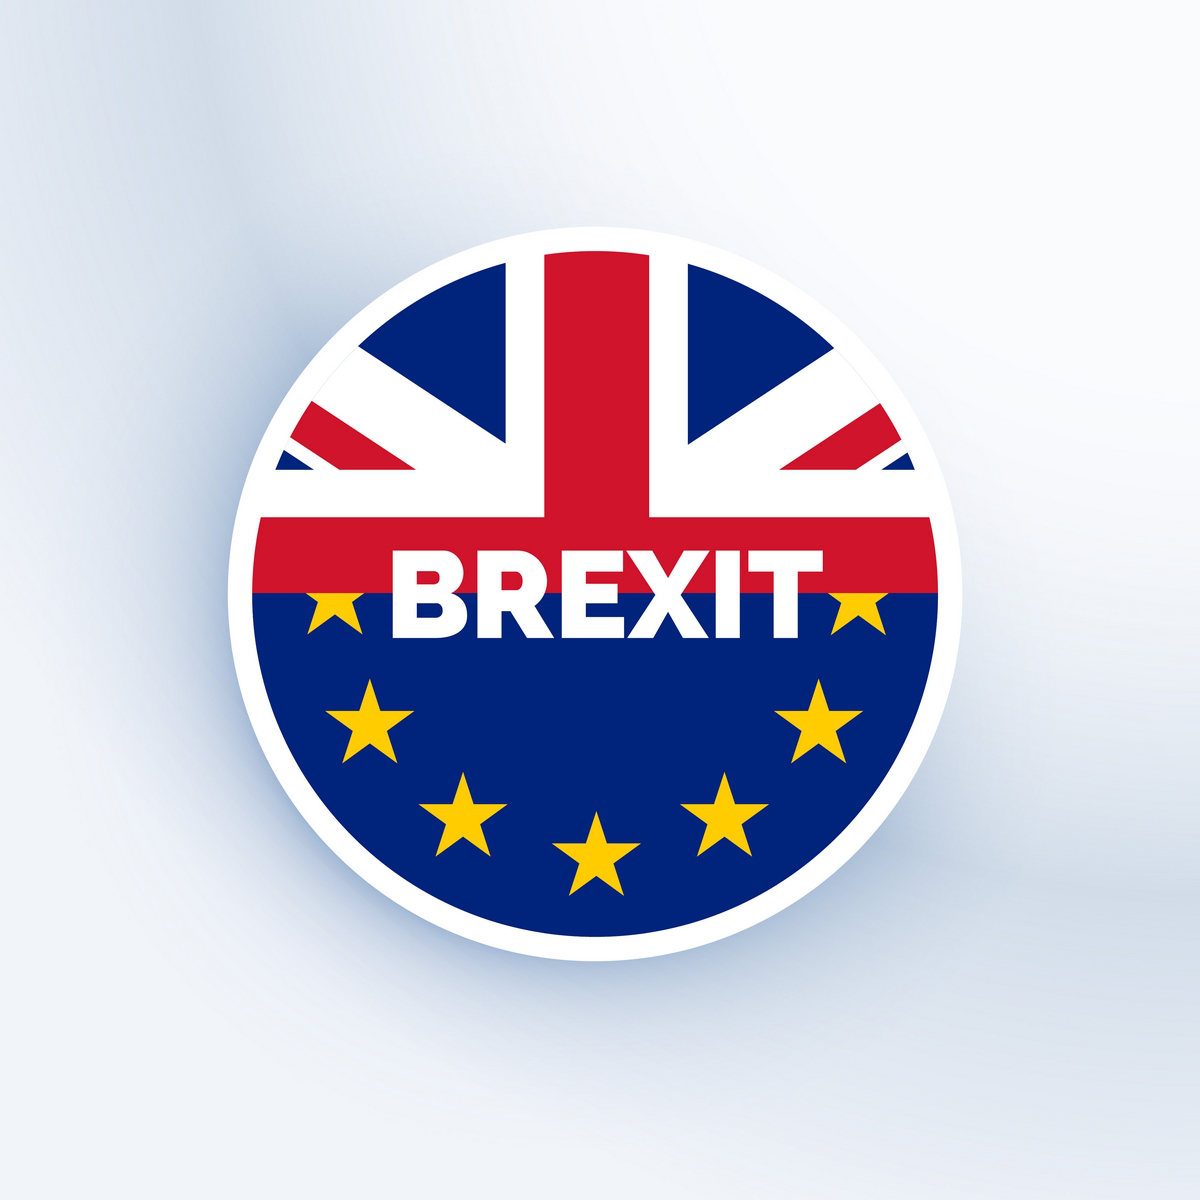 Brexit Negotiations will Begin on 19 June 2017